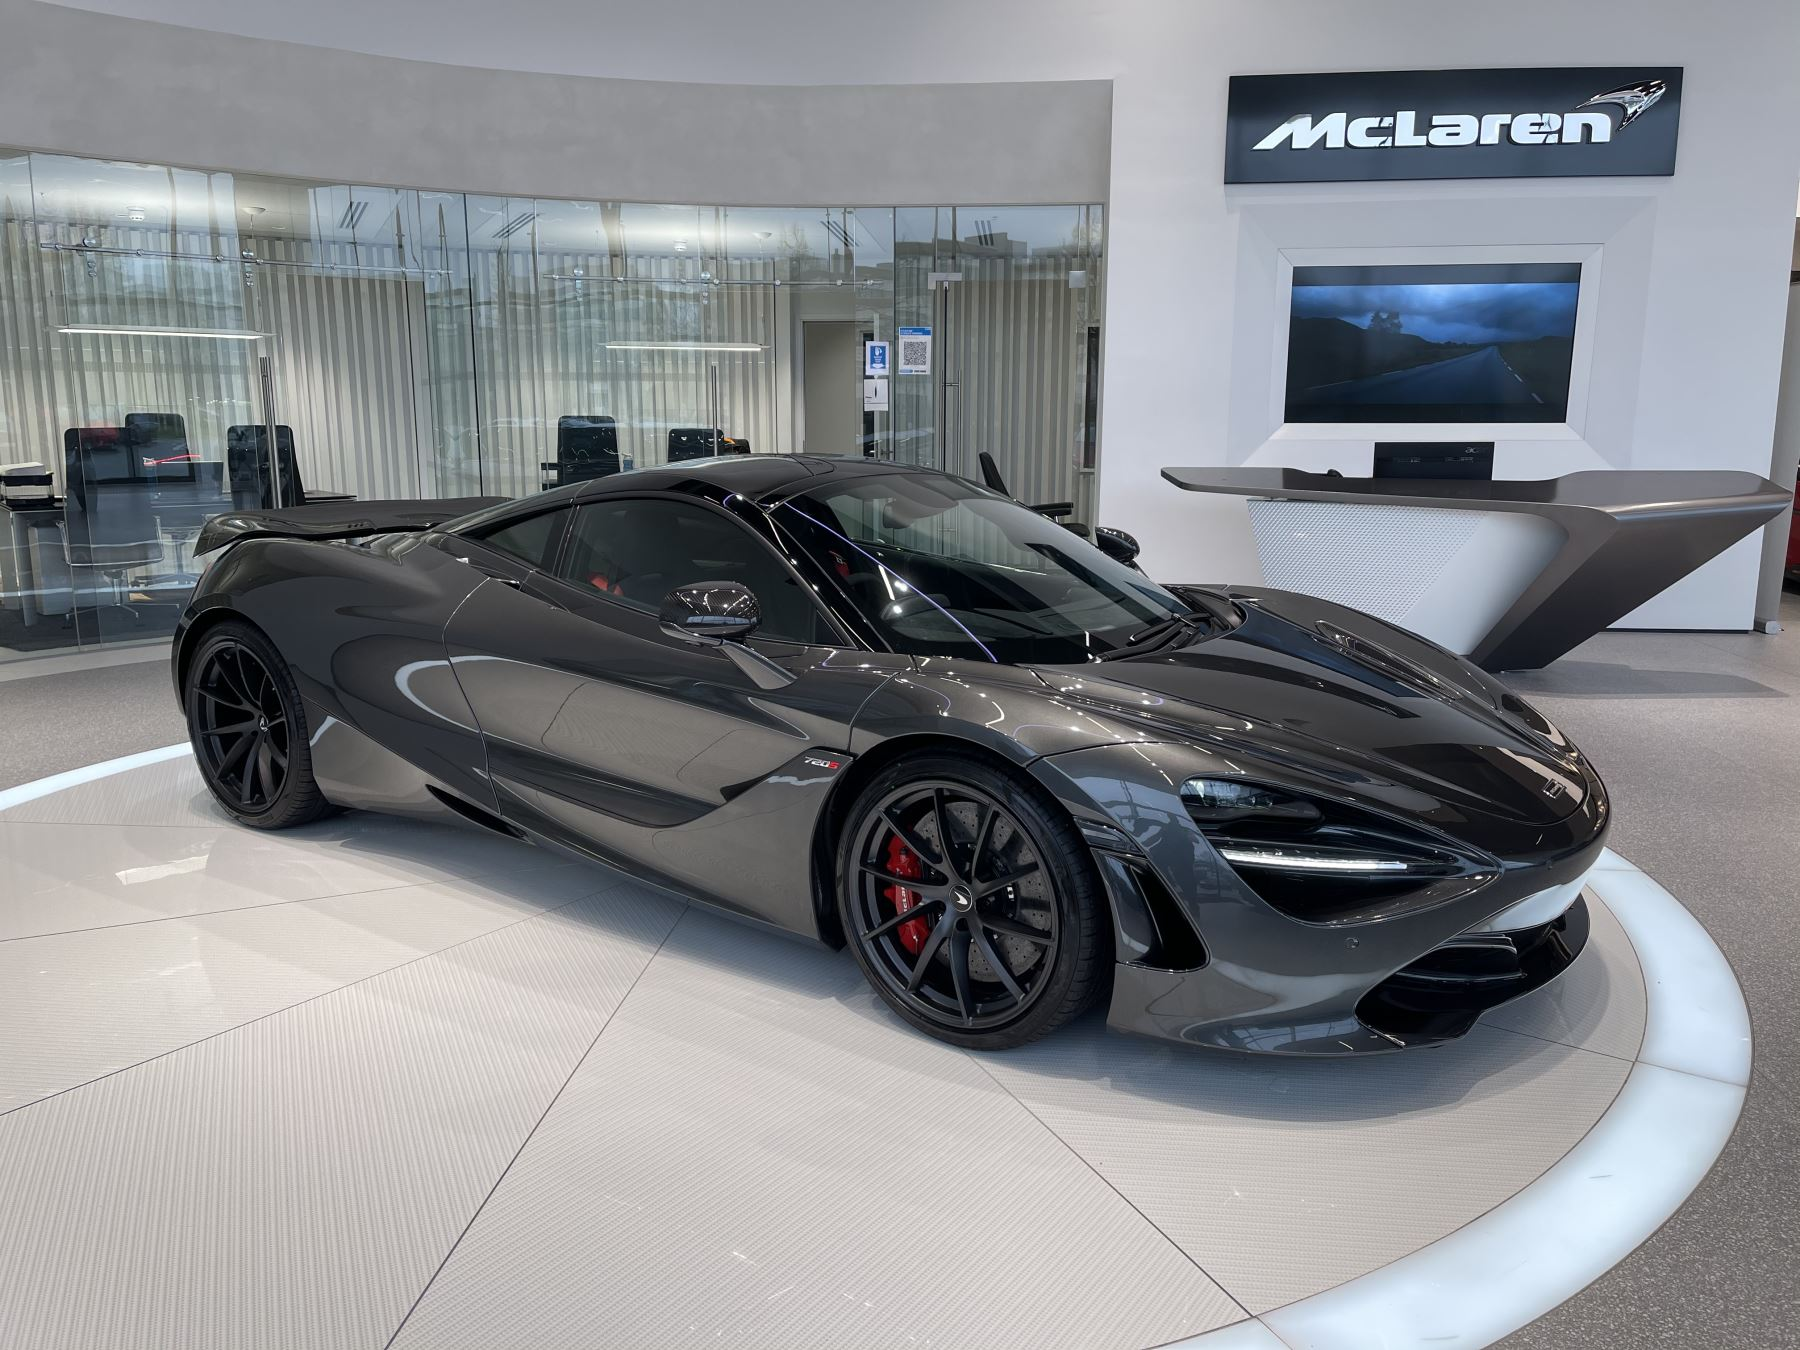 McLaren 720S 4.V8 2 DR PERFORMANCE 4.0 Automatic 2 door Coupe (2021) image